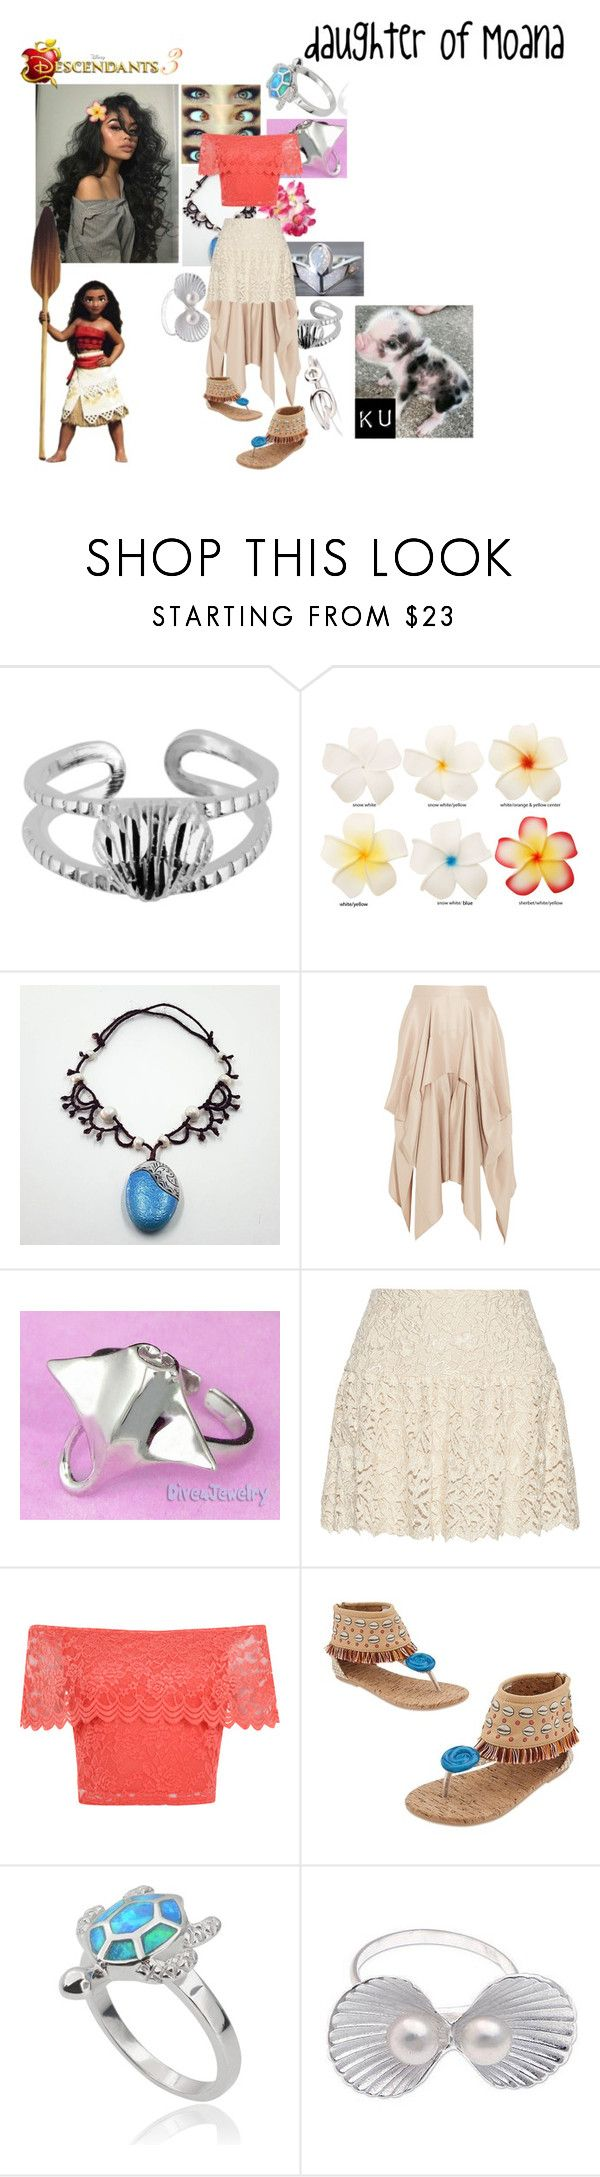 """Leinani Waialiki, daughter of Moana"" by frootloop16 ❤ liked on Polyvore featuring Barbara Casasola, Alice + Olivia, WearAll, Disney, Journee Collection and NOVICA"